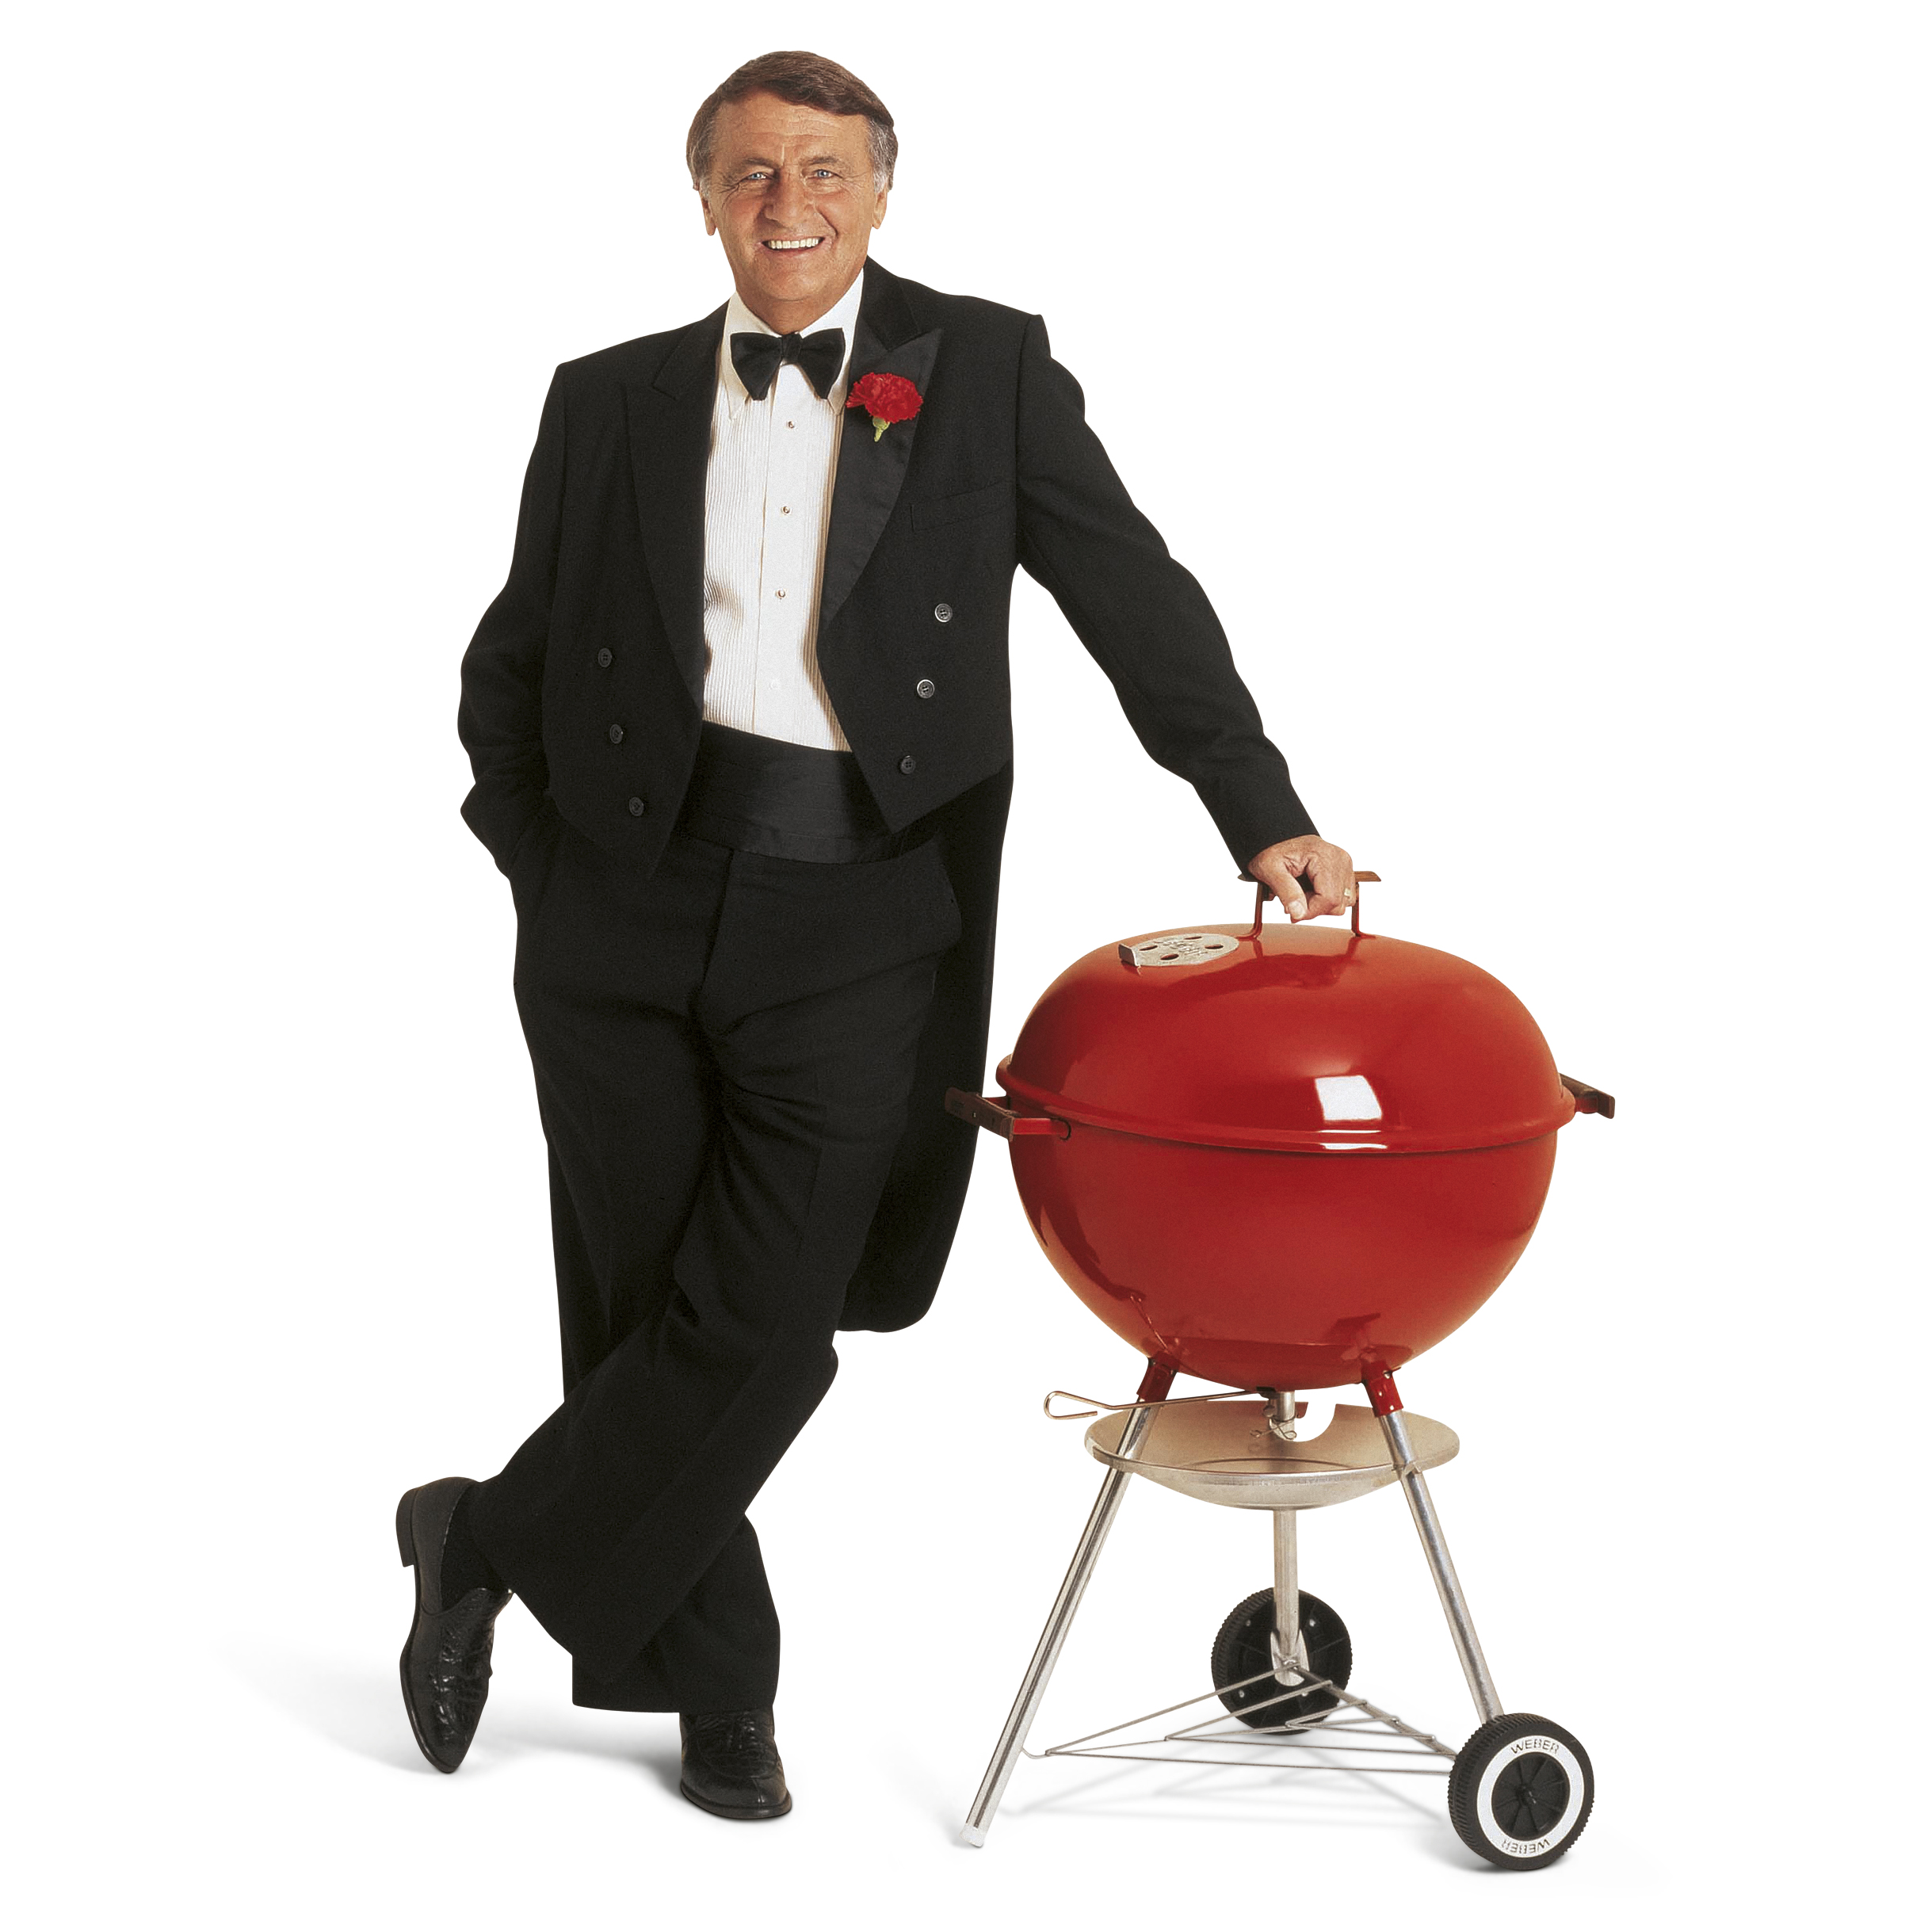 George Stephen, pioneer of the kettle barbecue (Weber/PA)